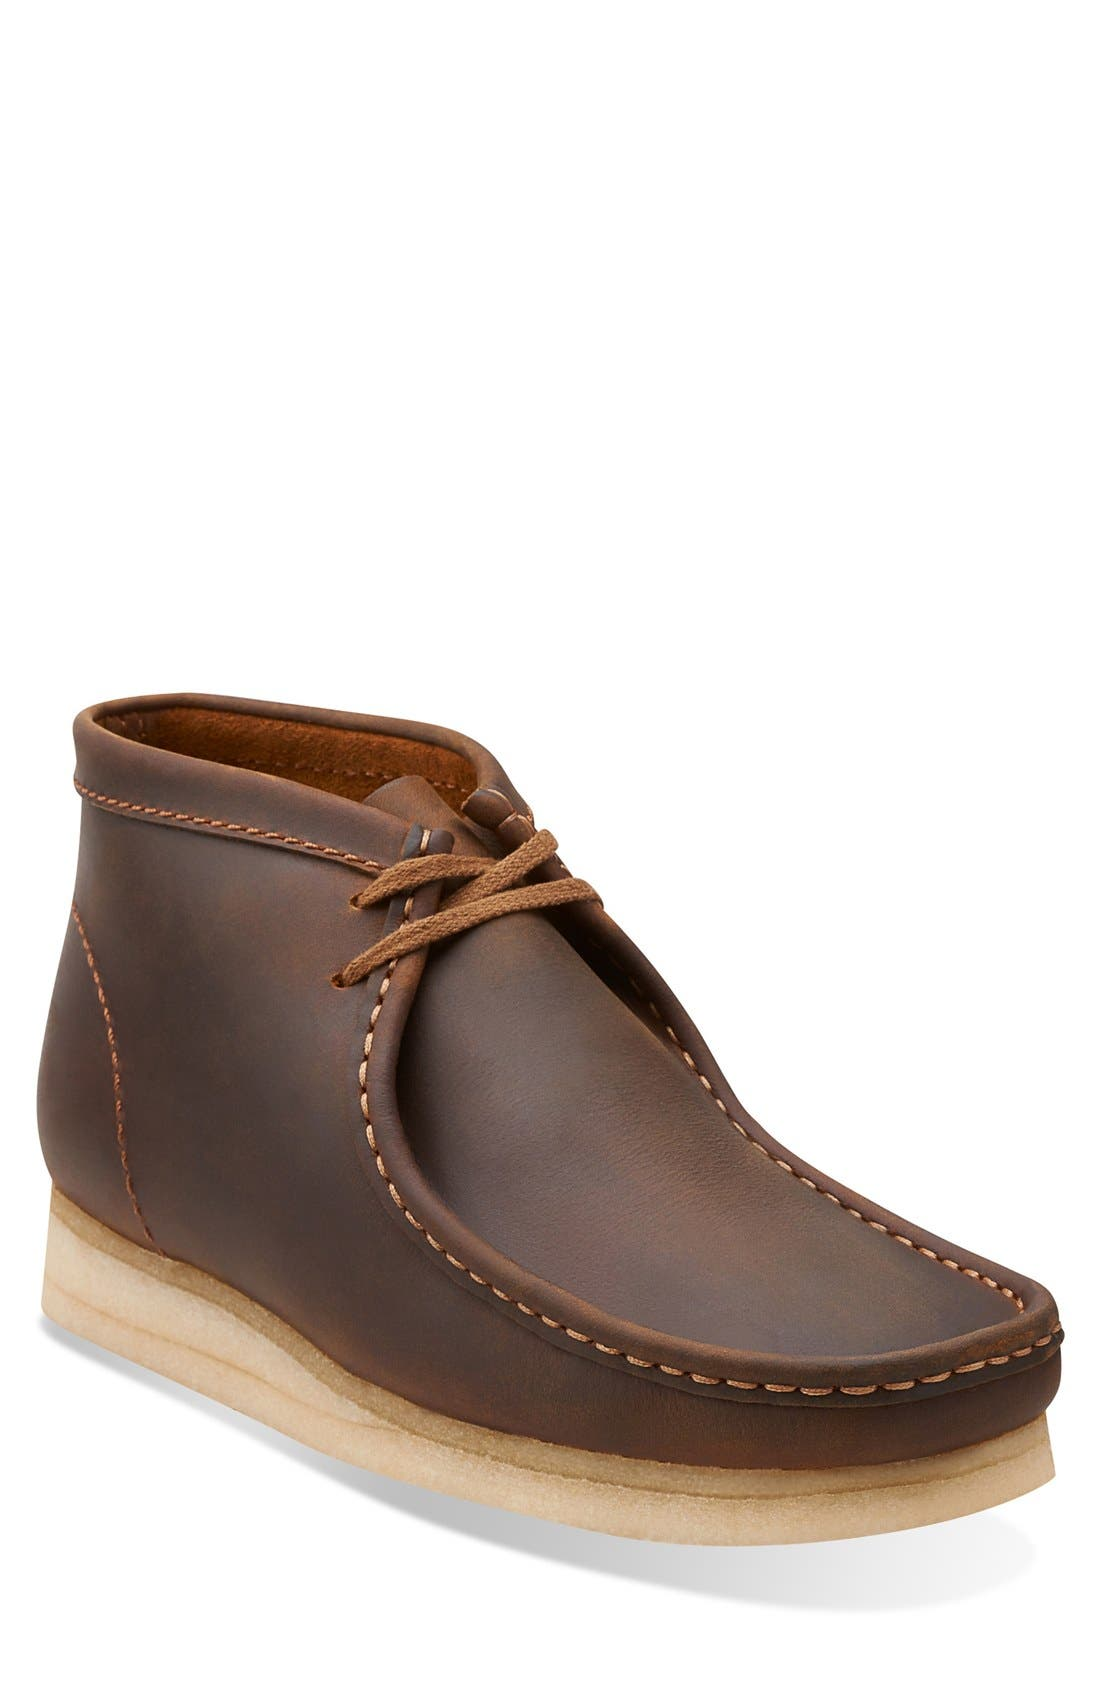 'Wallabee' Boot,                         Main,                         color, Beeswax Leather